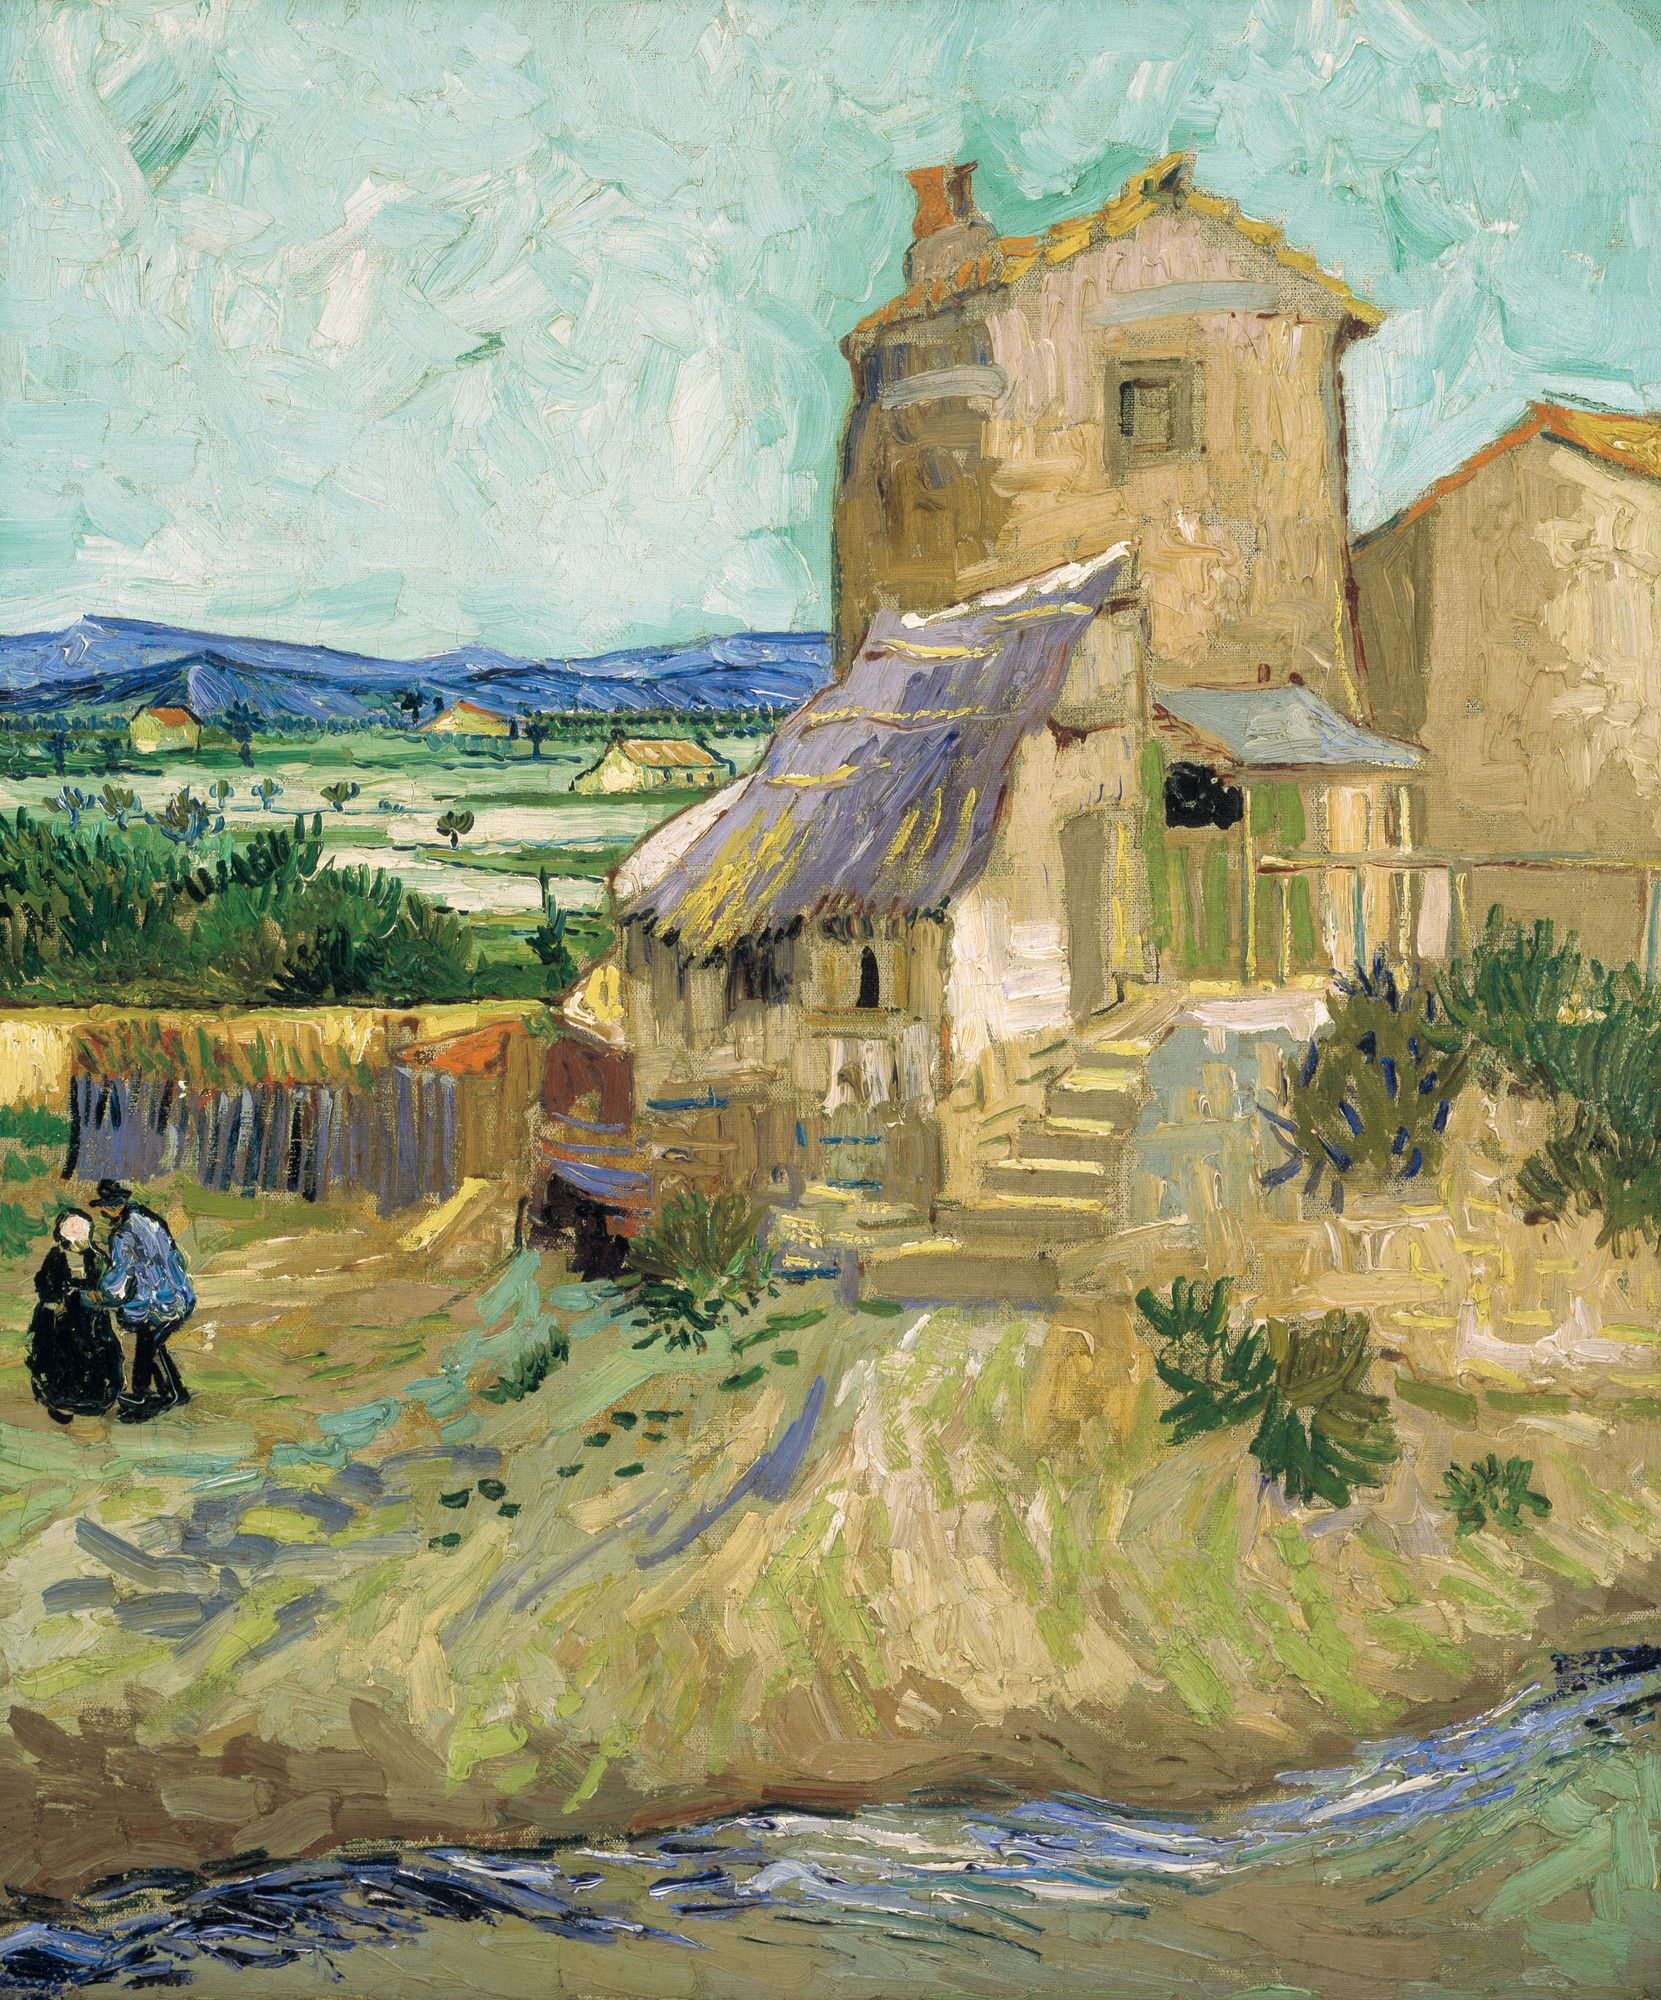 La Camera Da Letto Vincent Van Gogh Vincent Van Gogh The Old Mill Painting V I N C E N T V A N G O G H